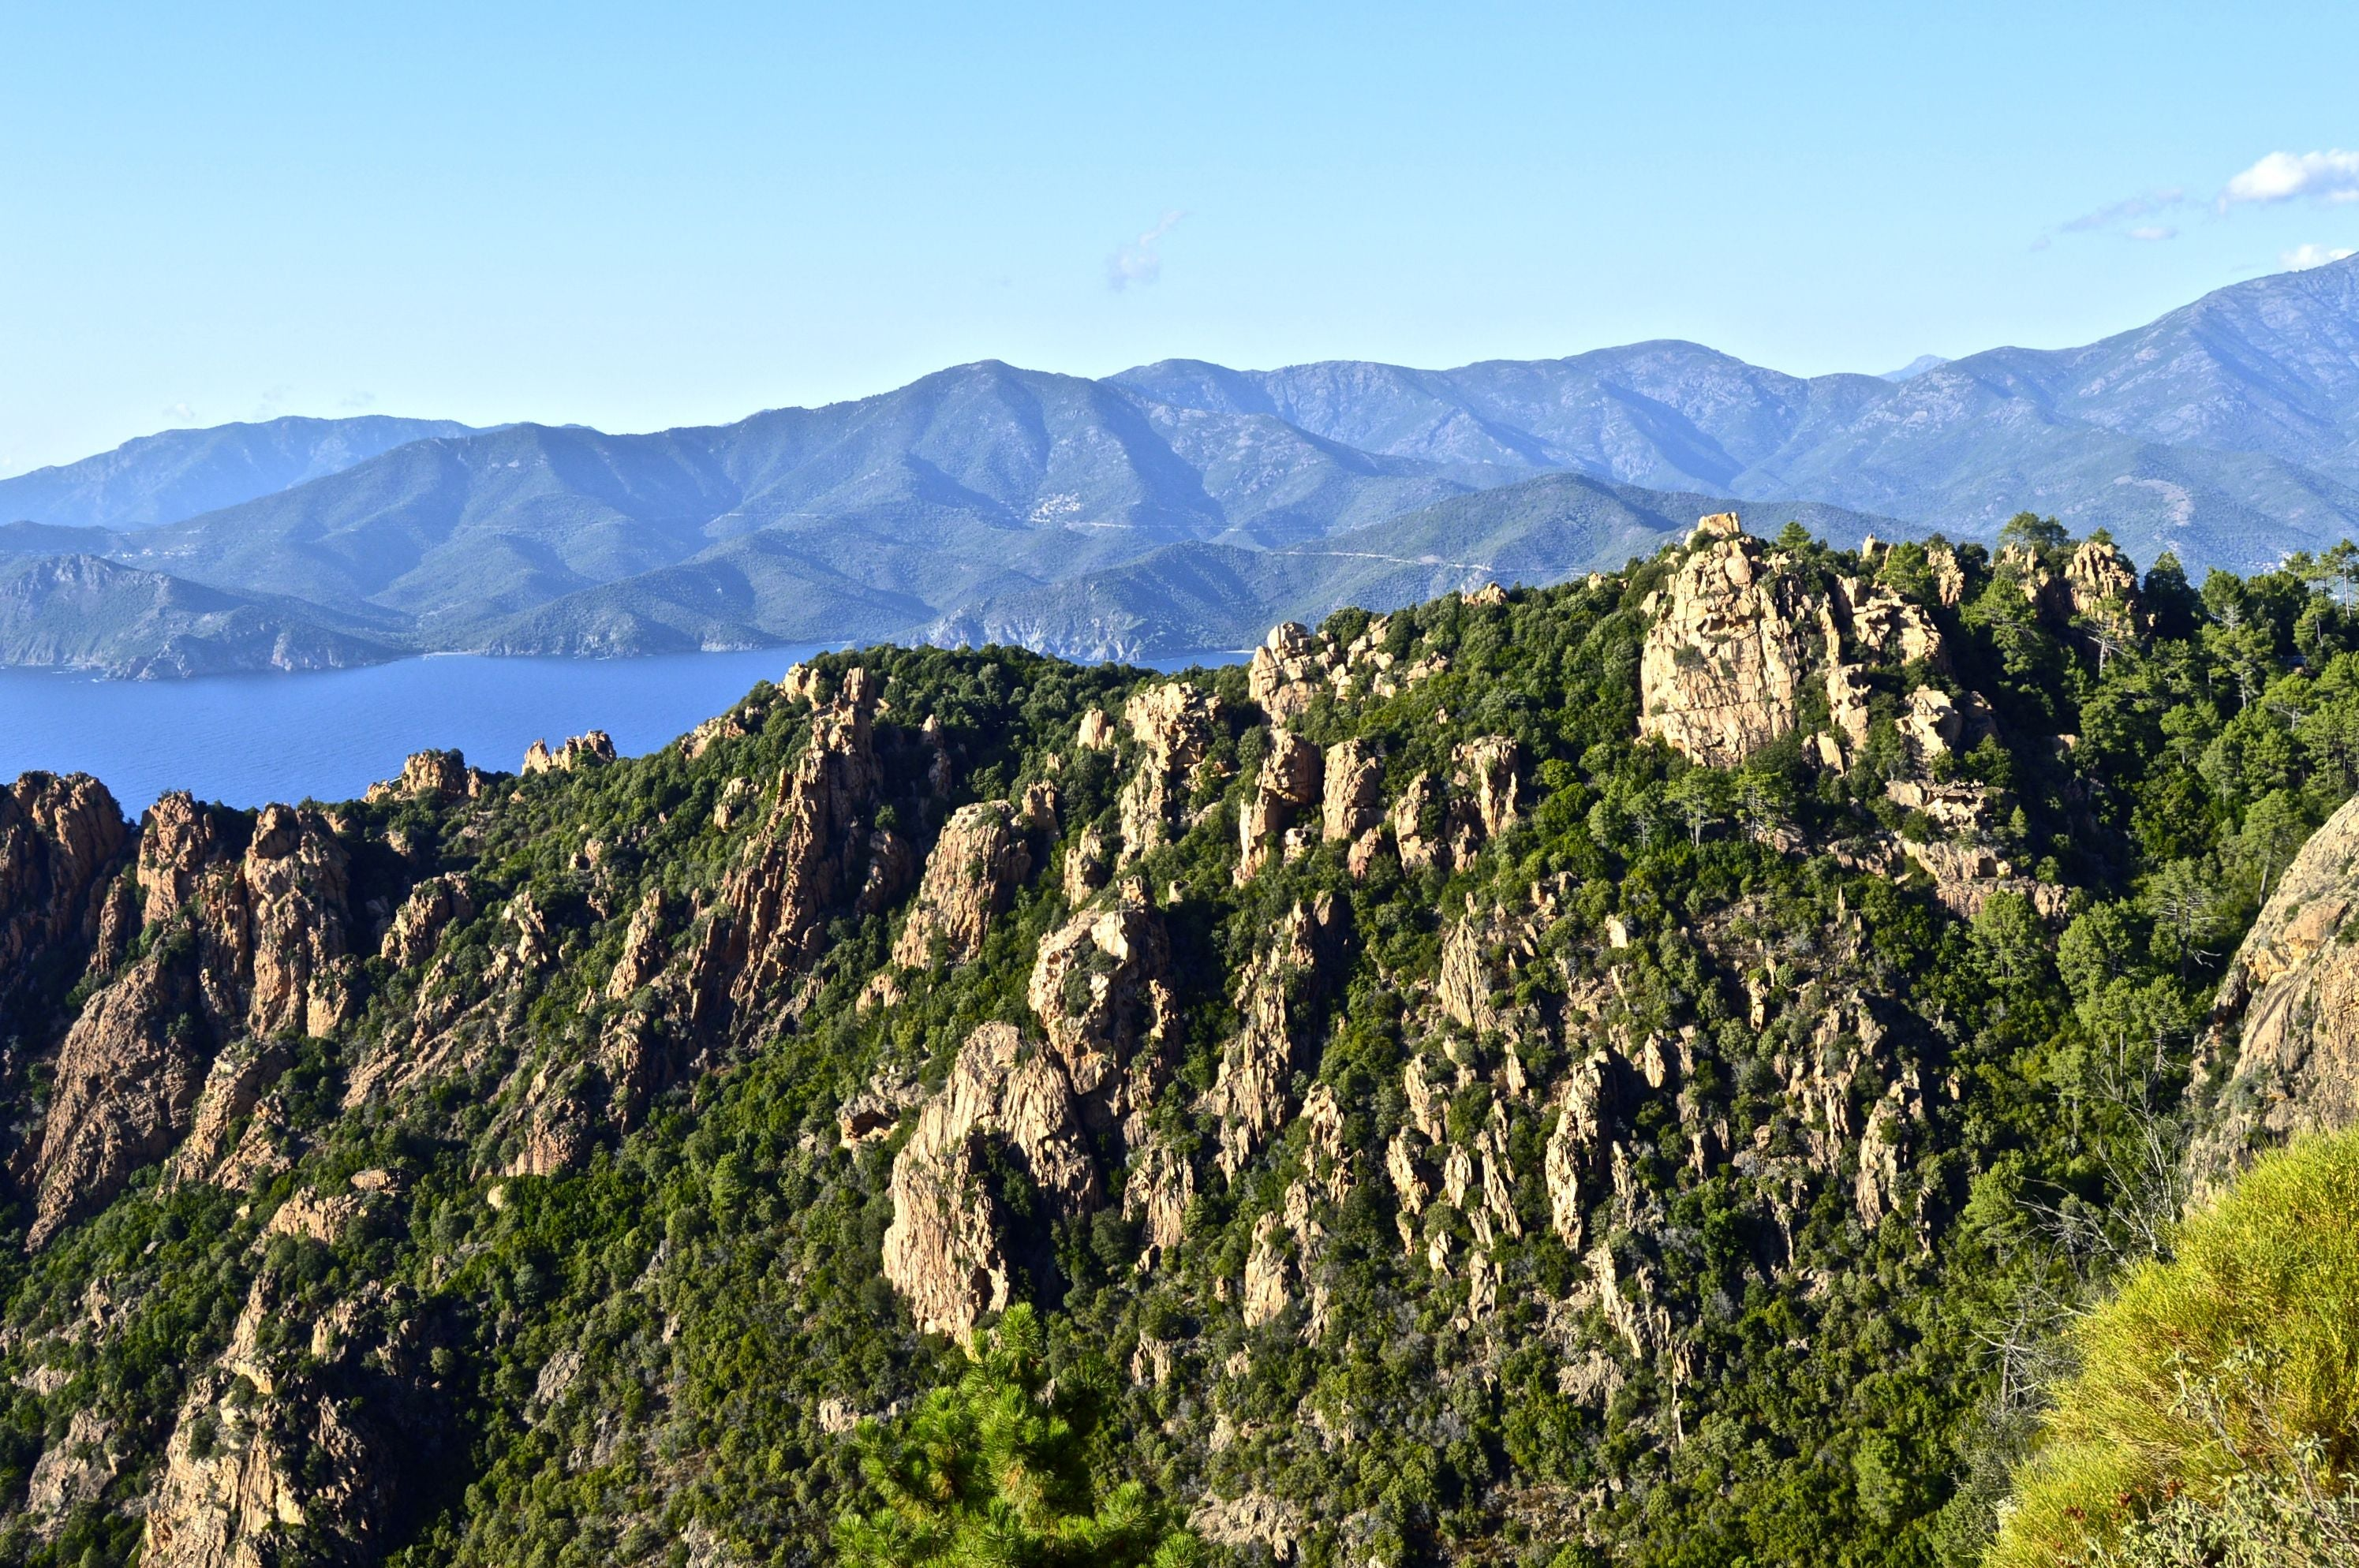 Forest in Mirador de Calanches de Piana